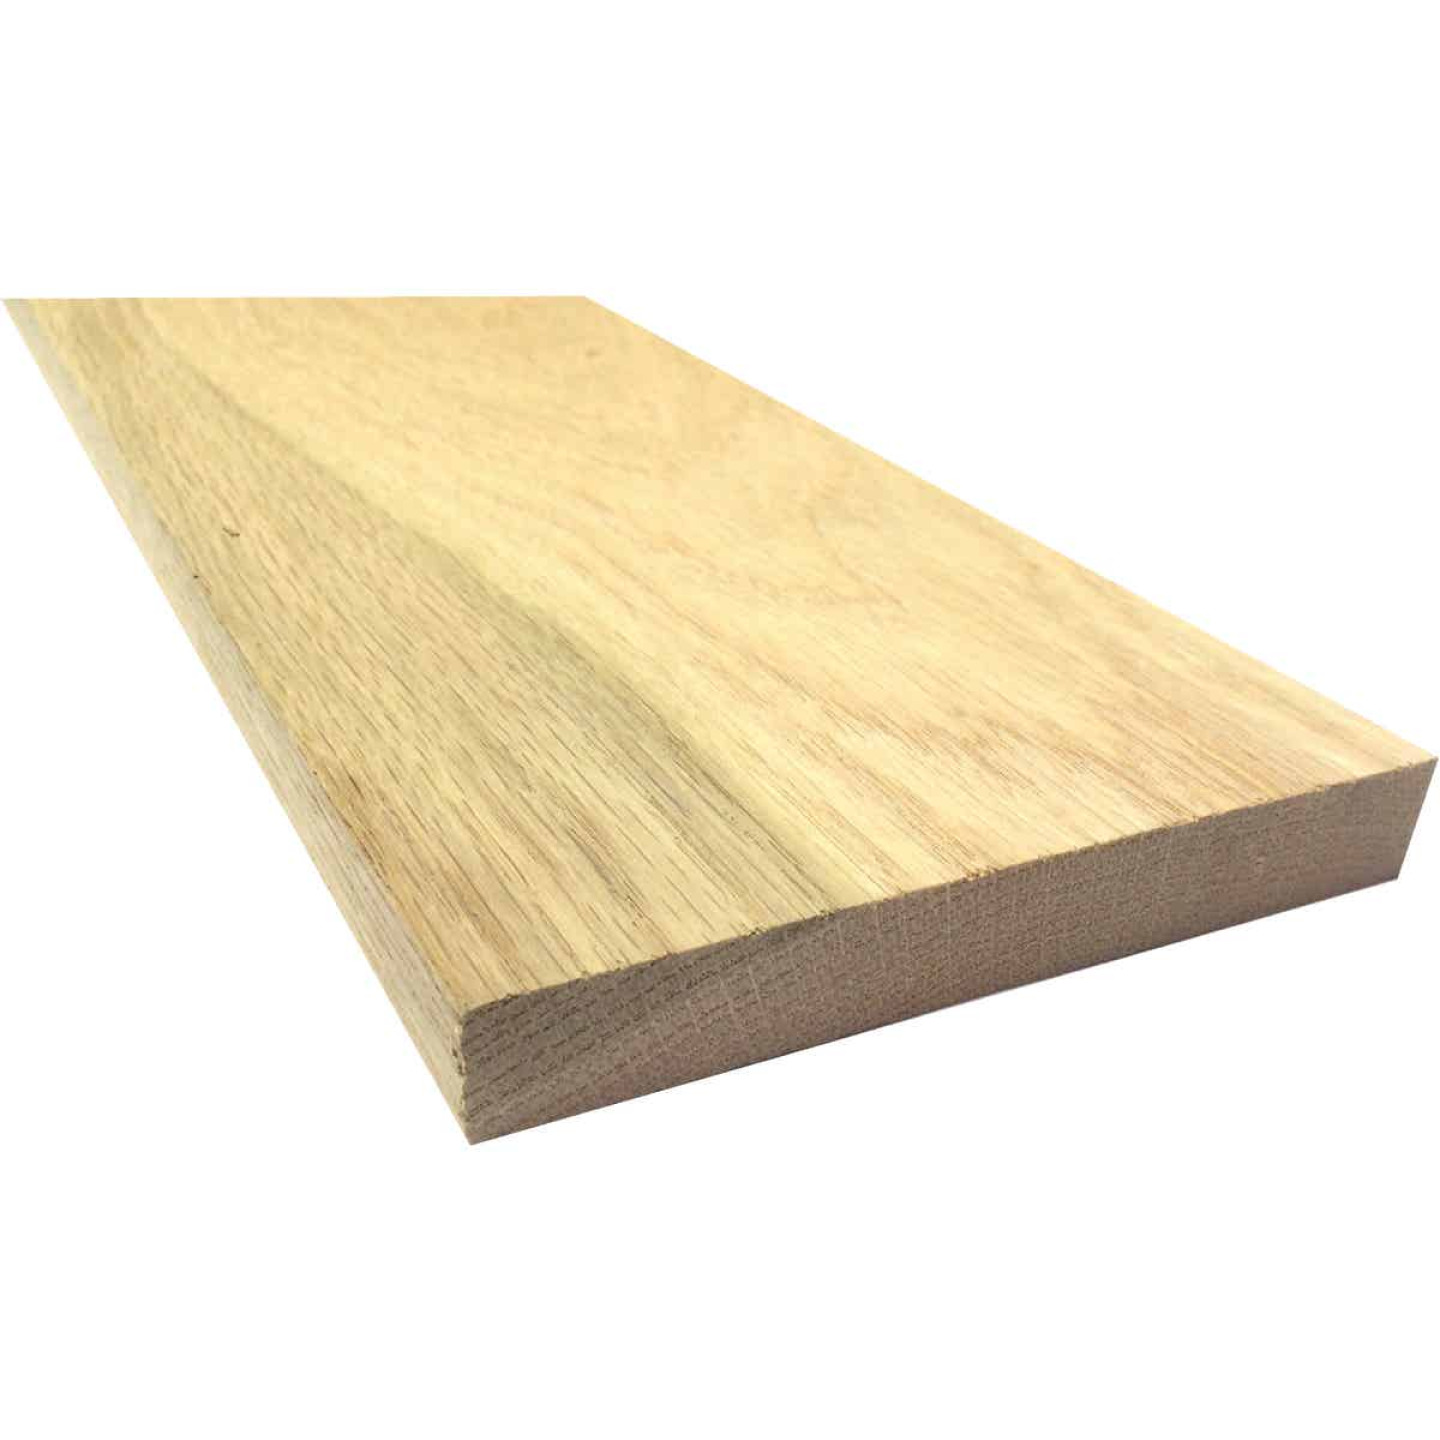 Waddell 1 In. x 6 In. x 3 Ft. Red Oak Board Image 1